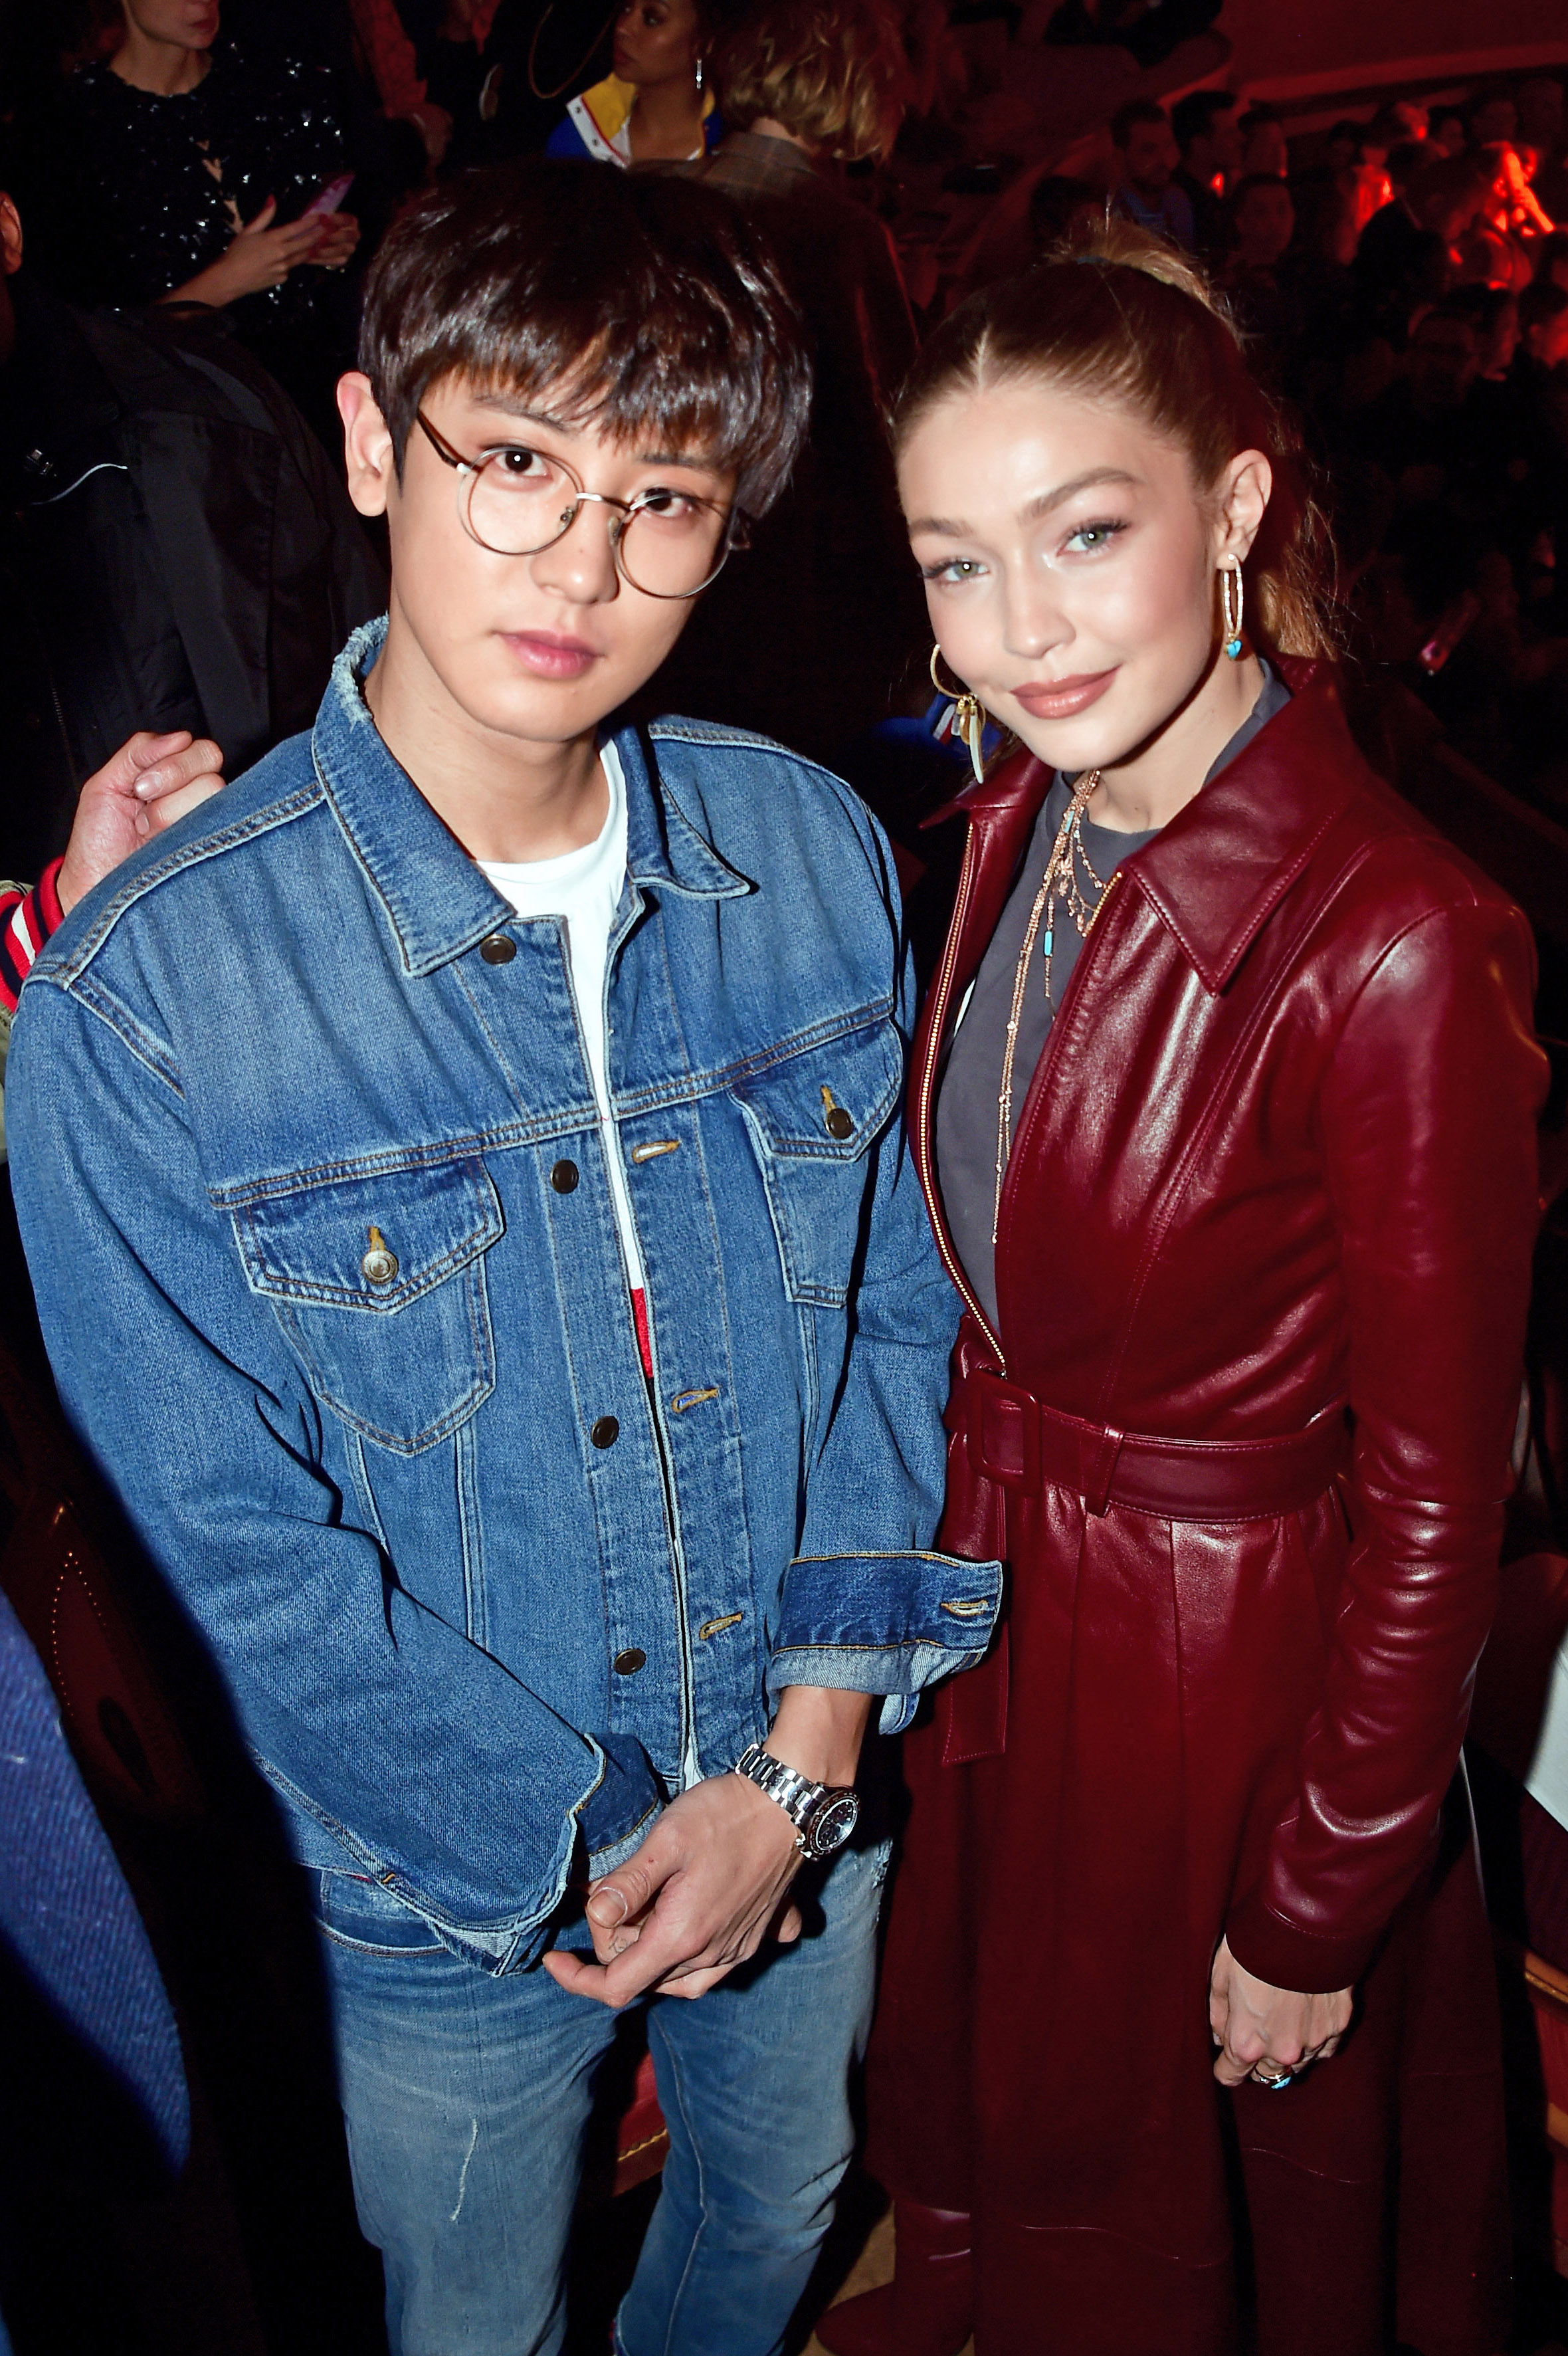 PARIS, FRANCE - MARCH 02: (L-R) Chanyeol Park and Gigi Hadid attend the Tommy Hilfiger TOMMYNOW Spring 2019 : TommyXZendaya Premieres at Theatre des Champs-Elysees on March 02, 2019 in Paris, France. (Photo by Anthony Ghnassia/Getty Images For Tommy Hilfiger)